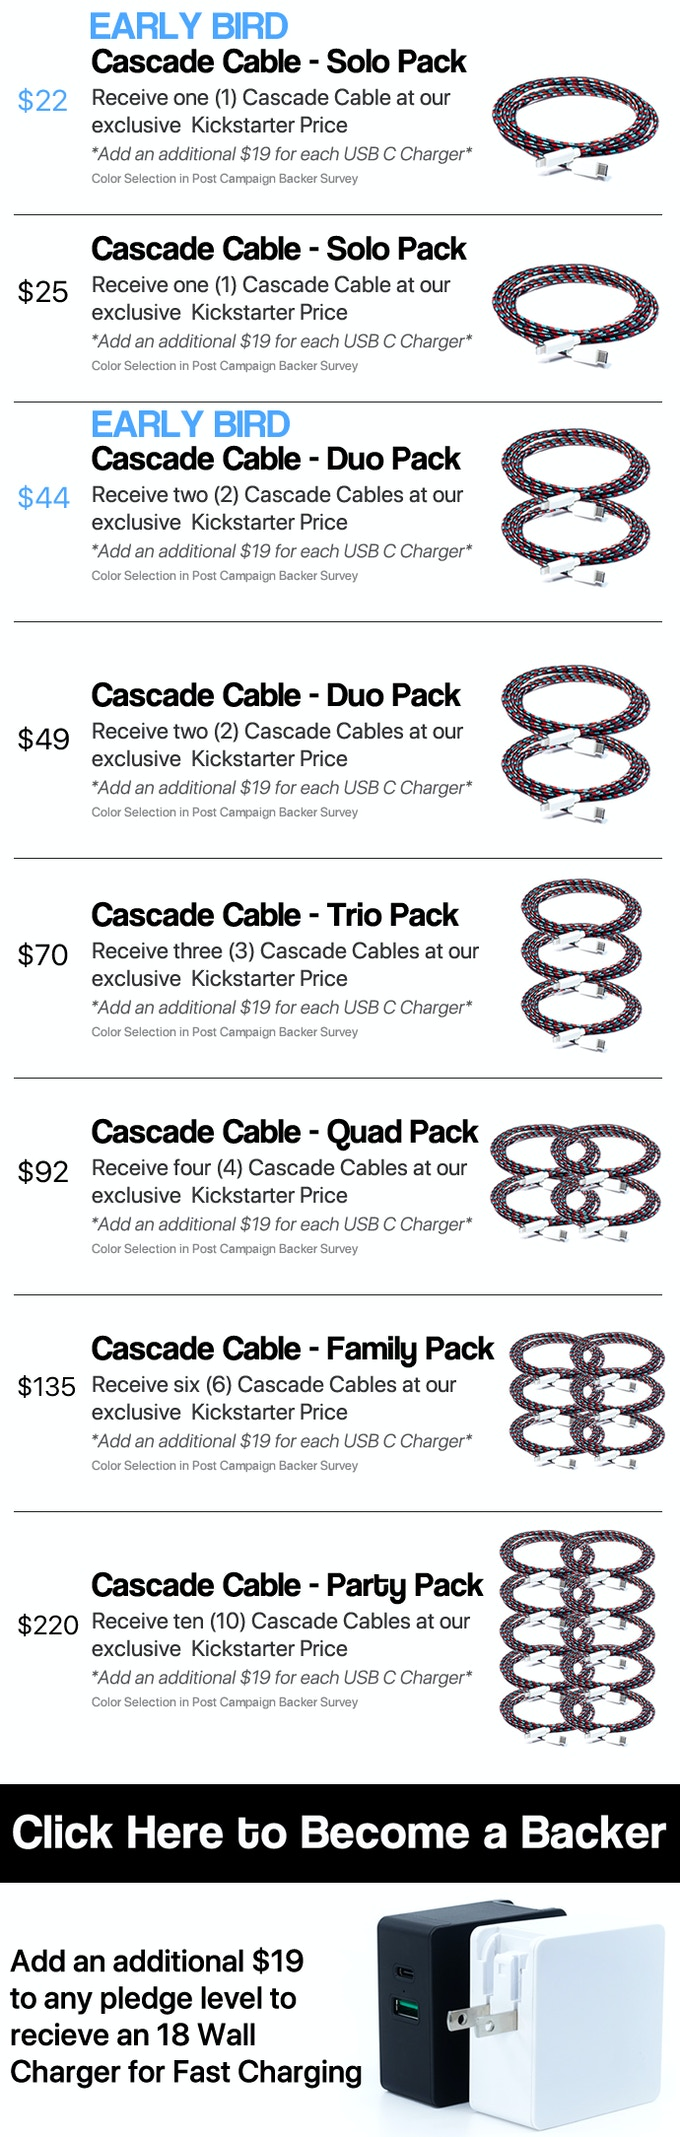 we have already taken the steps to ensure we are able to meet the below  timeframe so you have your hands on the cascade cables as soon as possible